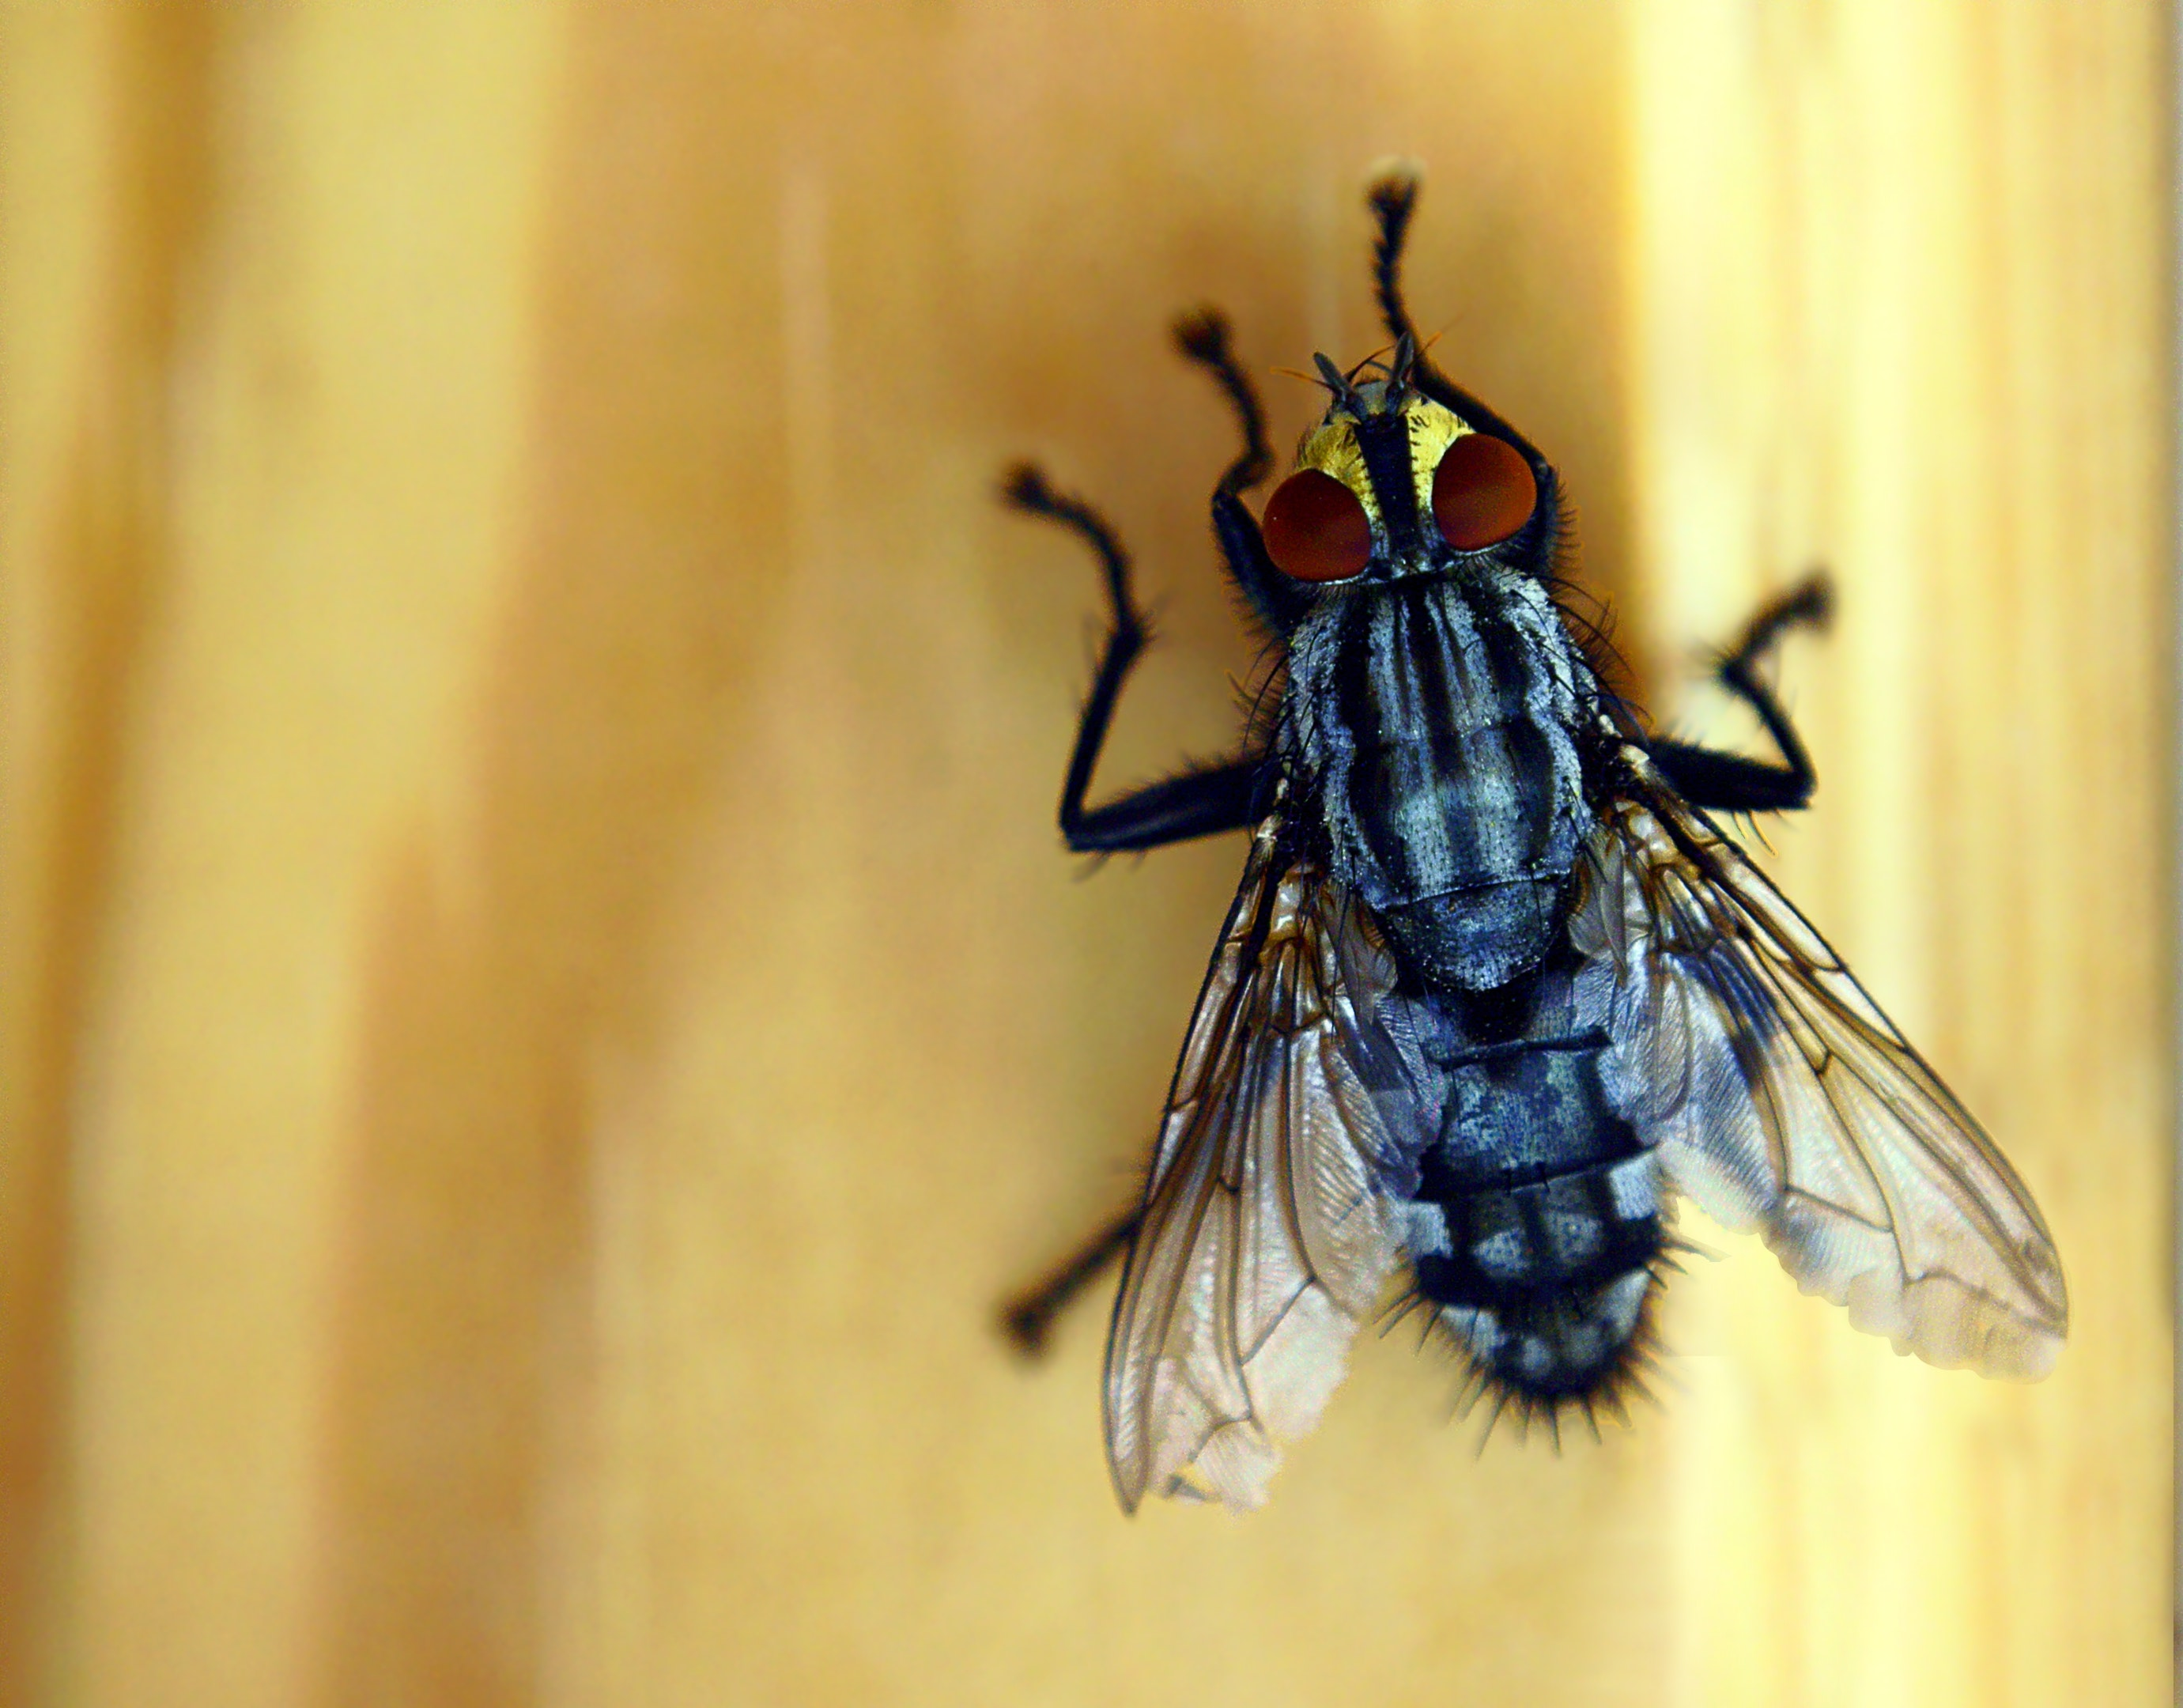 Free stock photo of fly eye, fly wing, housefly